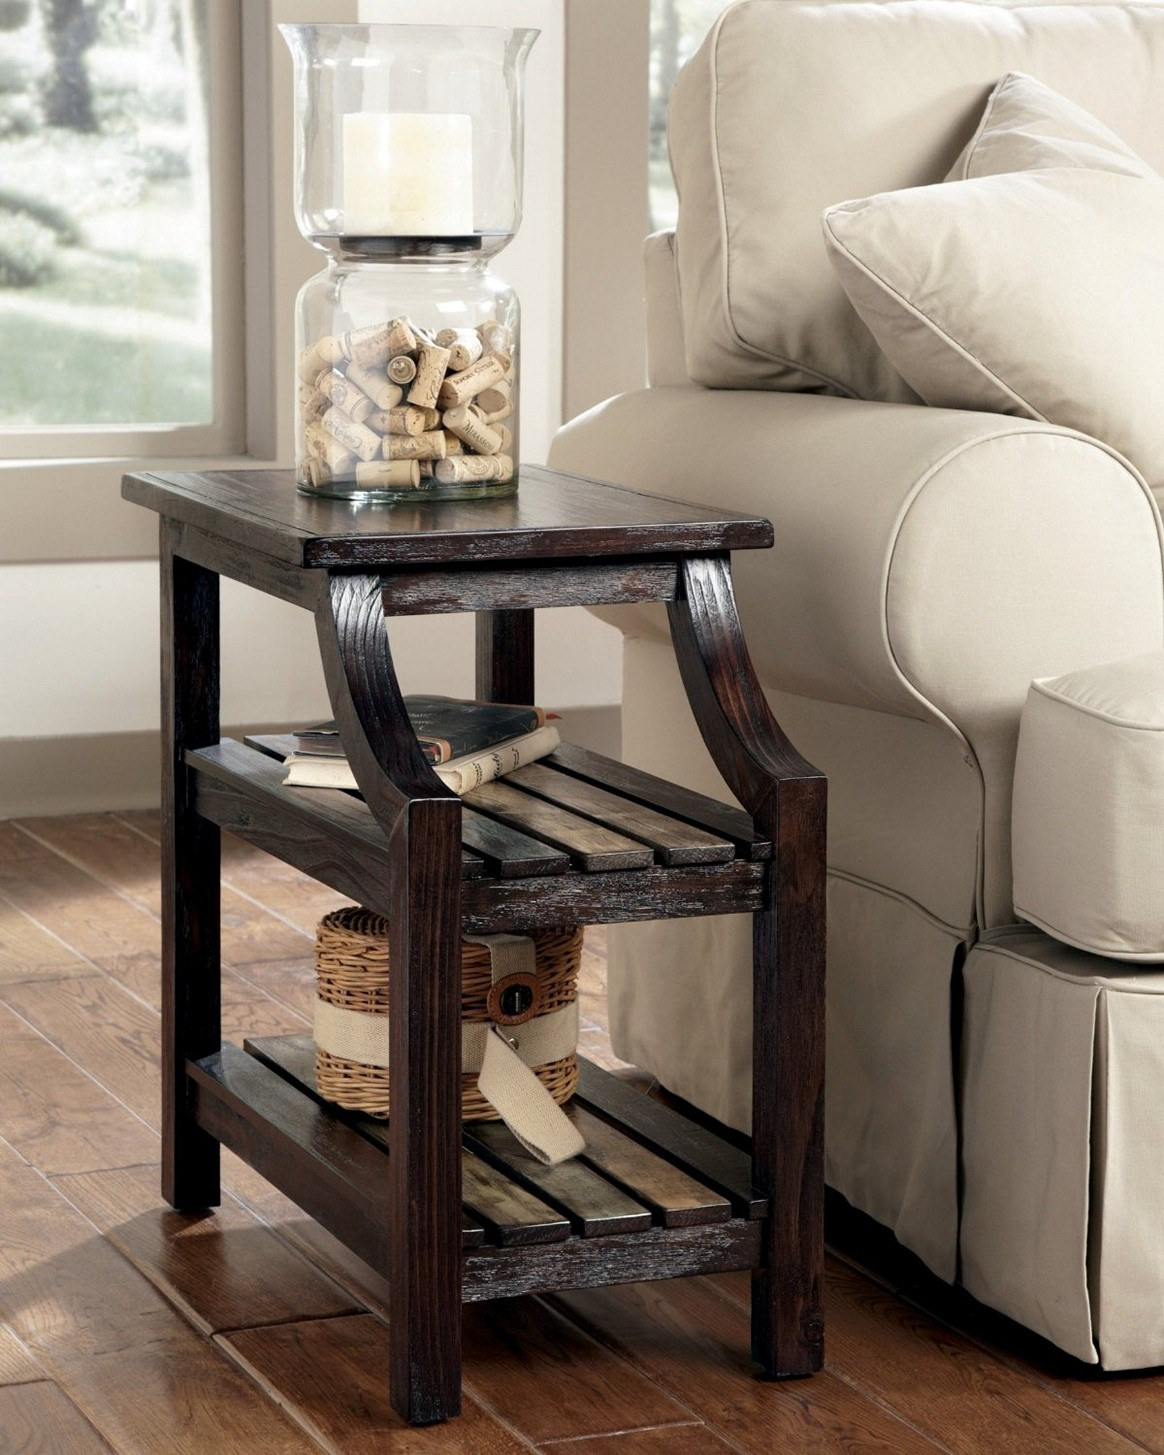 mango wood accent table the terrific awesome berwyn end adorable rustic coffee look exquisite interior living room decoration establish unique brown tables near clean white big